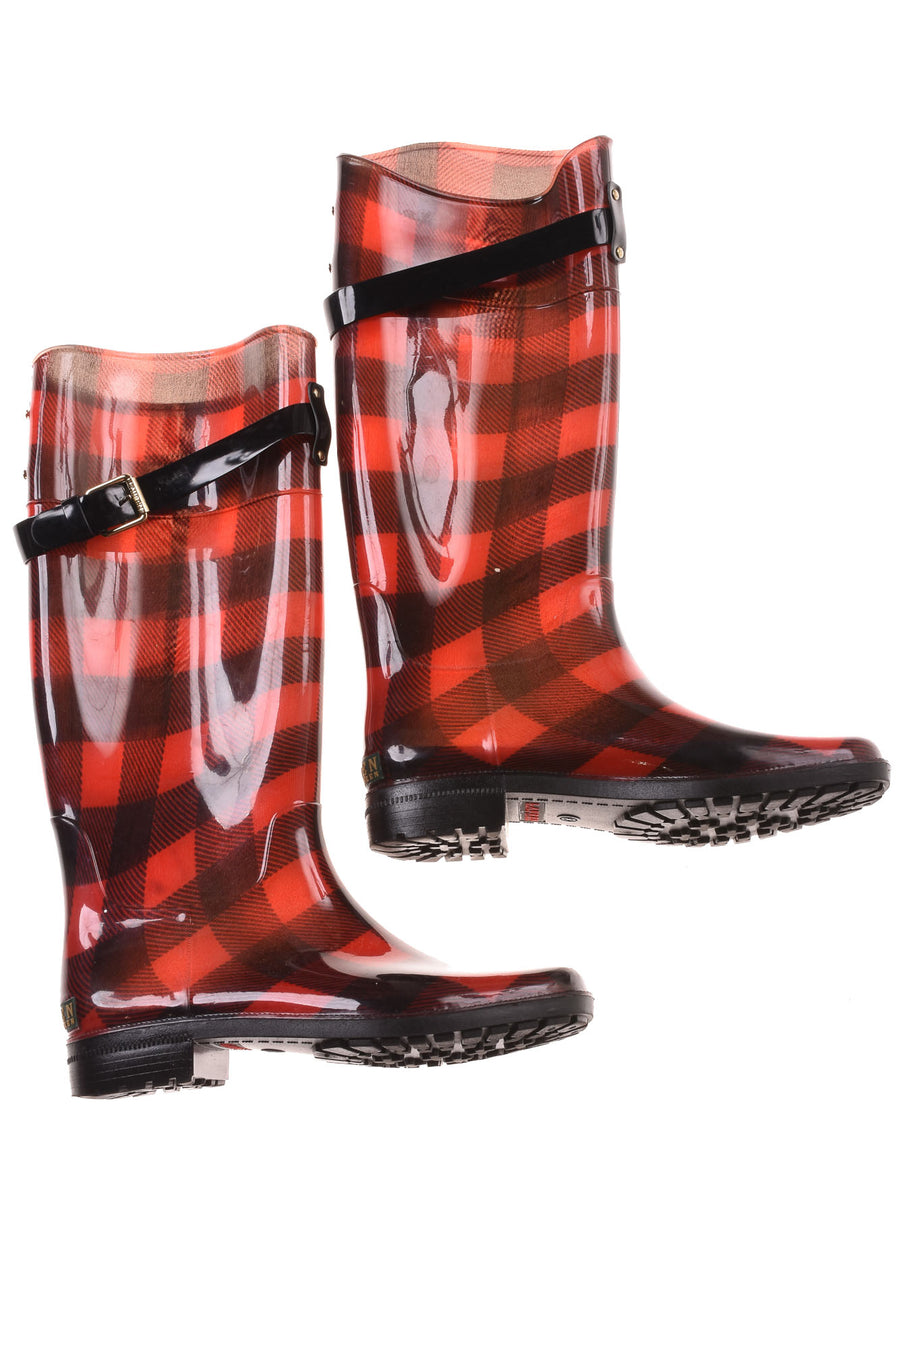 USED Lauren Ralph Lauren Women's Boots 8 Red & Black